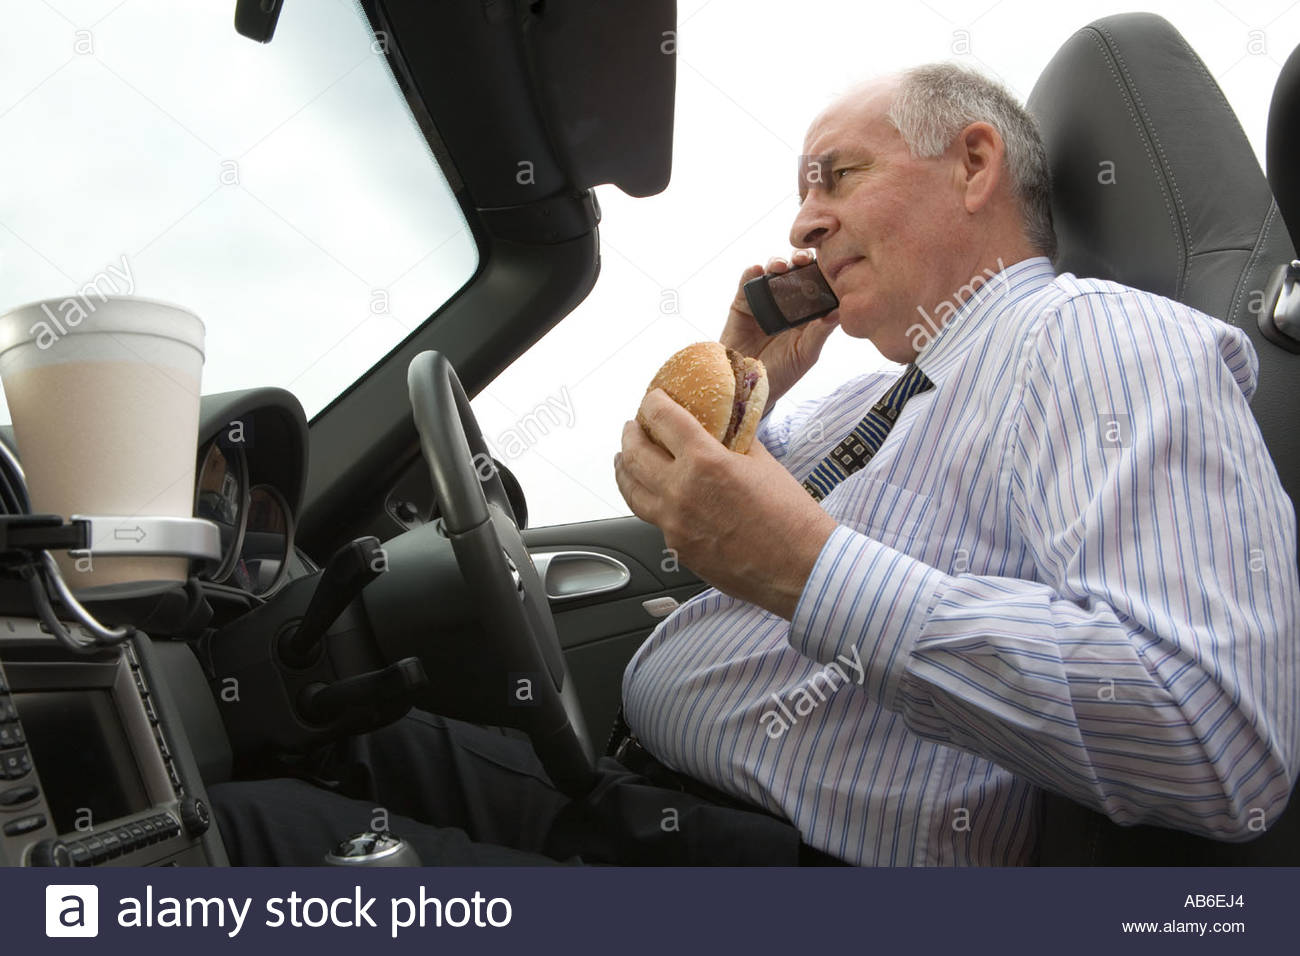 Overweight senior businessman talking on a mobile phone and having a junk food snack in his car - Stock Image